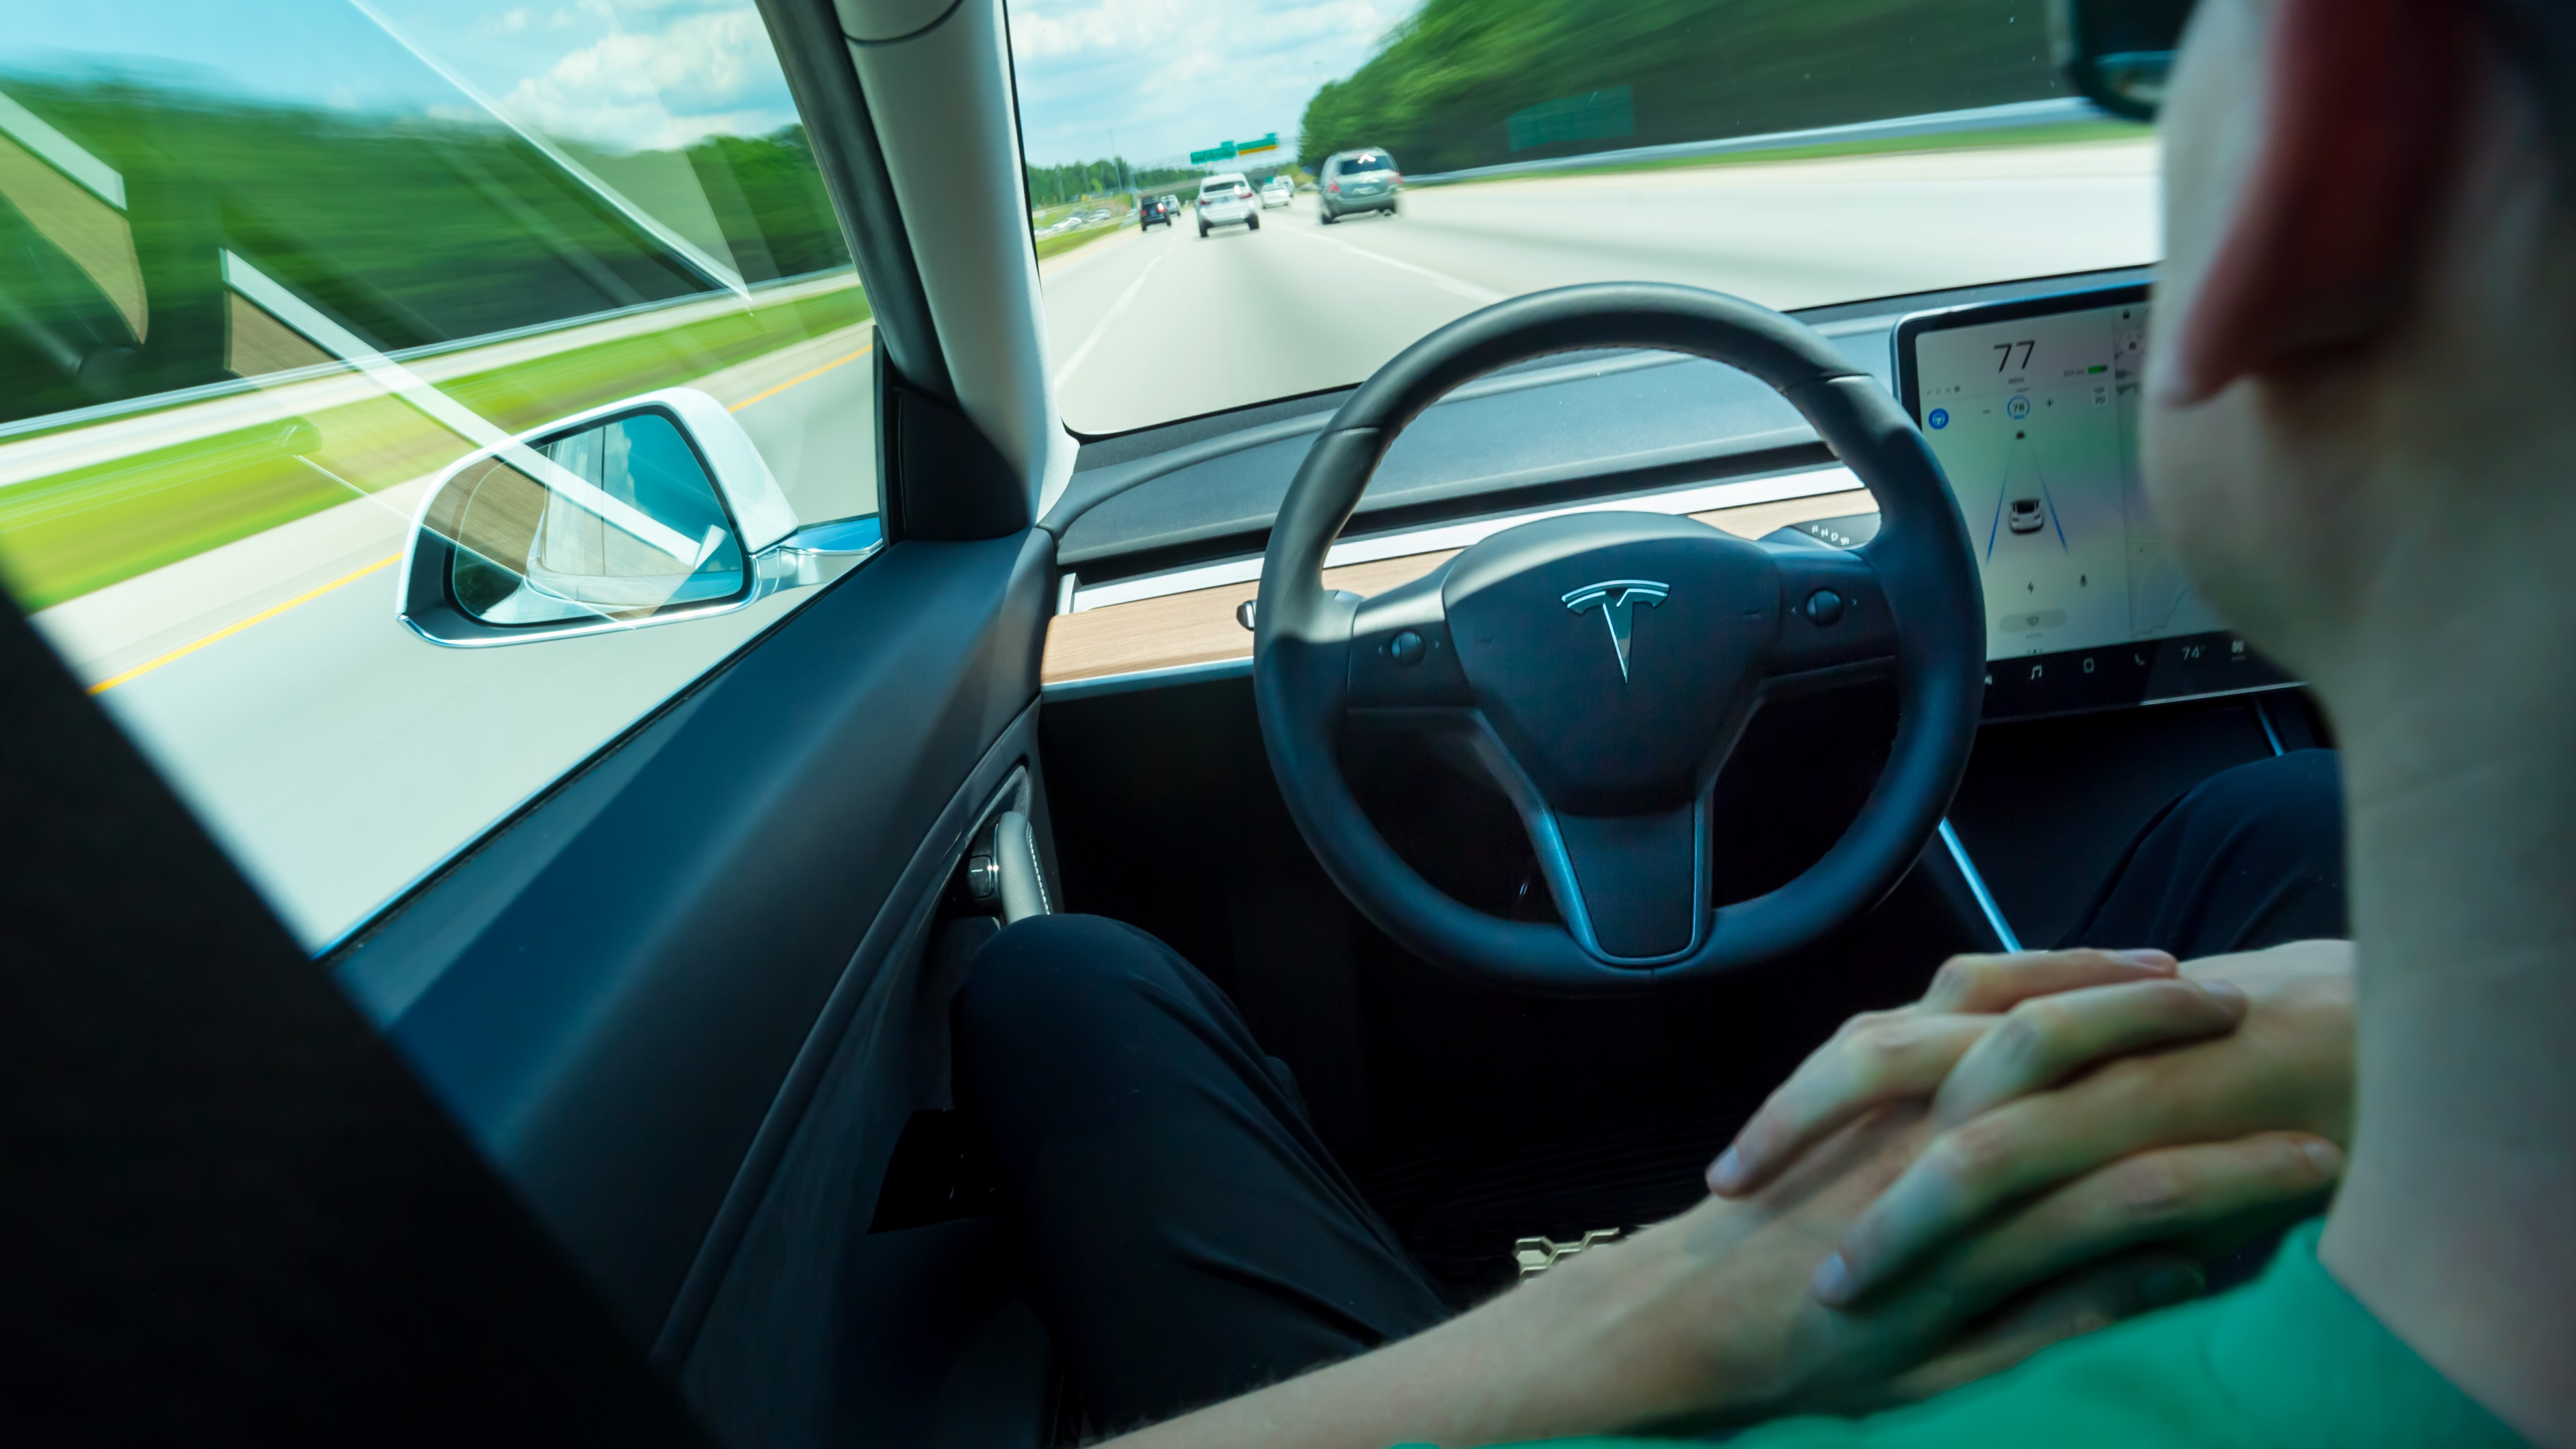 Researchers tricked a Tesla Model S into speeding with a piece of tape – how could hackers cheat our cars in the future?